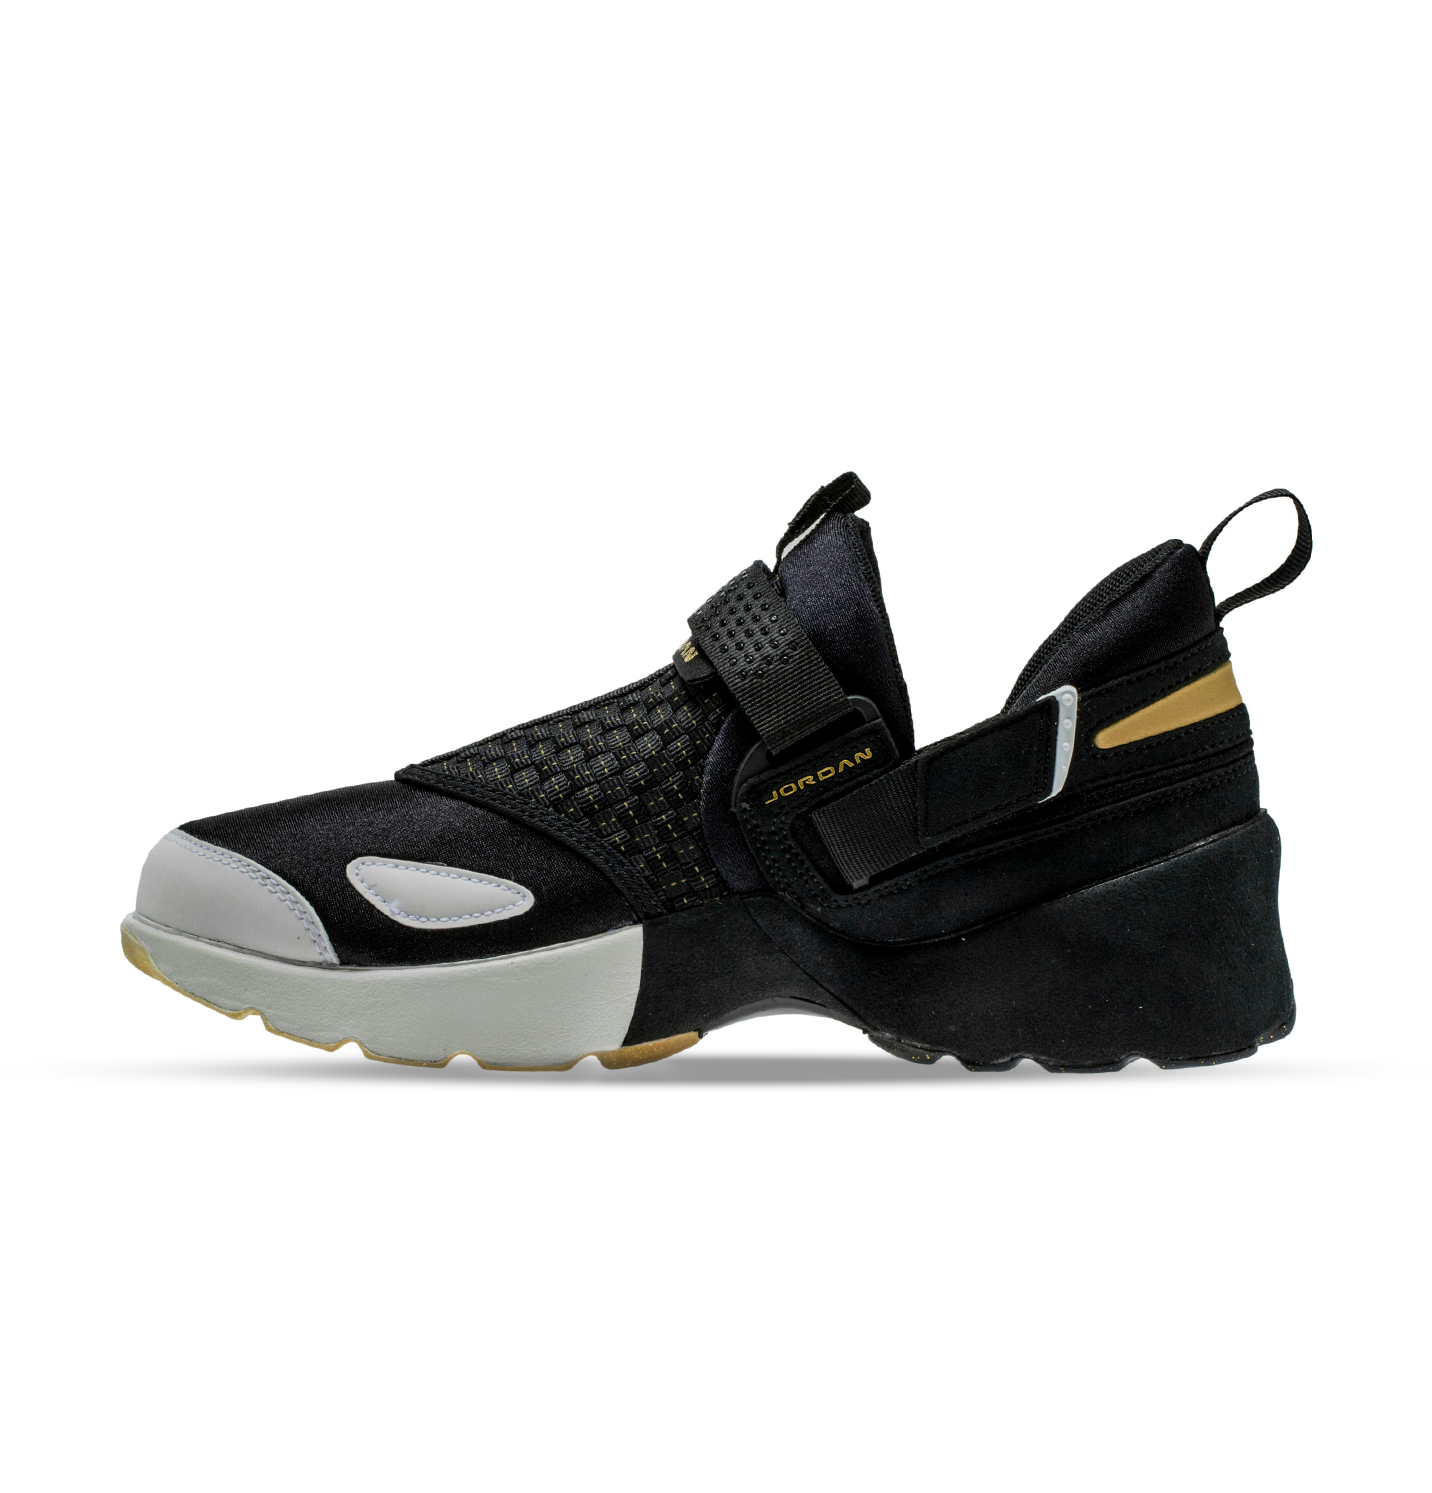 0f6b2fb95 909408-032 Air Jordan Trunner LX BHM Men's Shoes | Products | Air ...